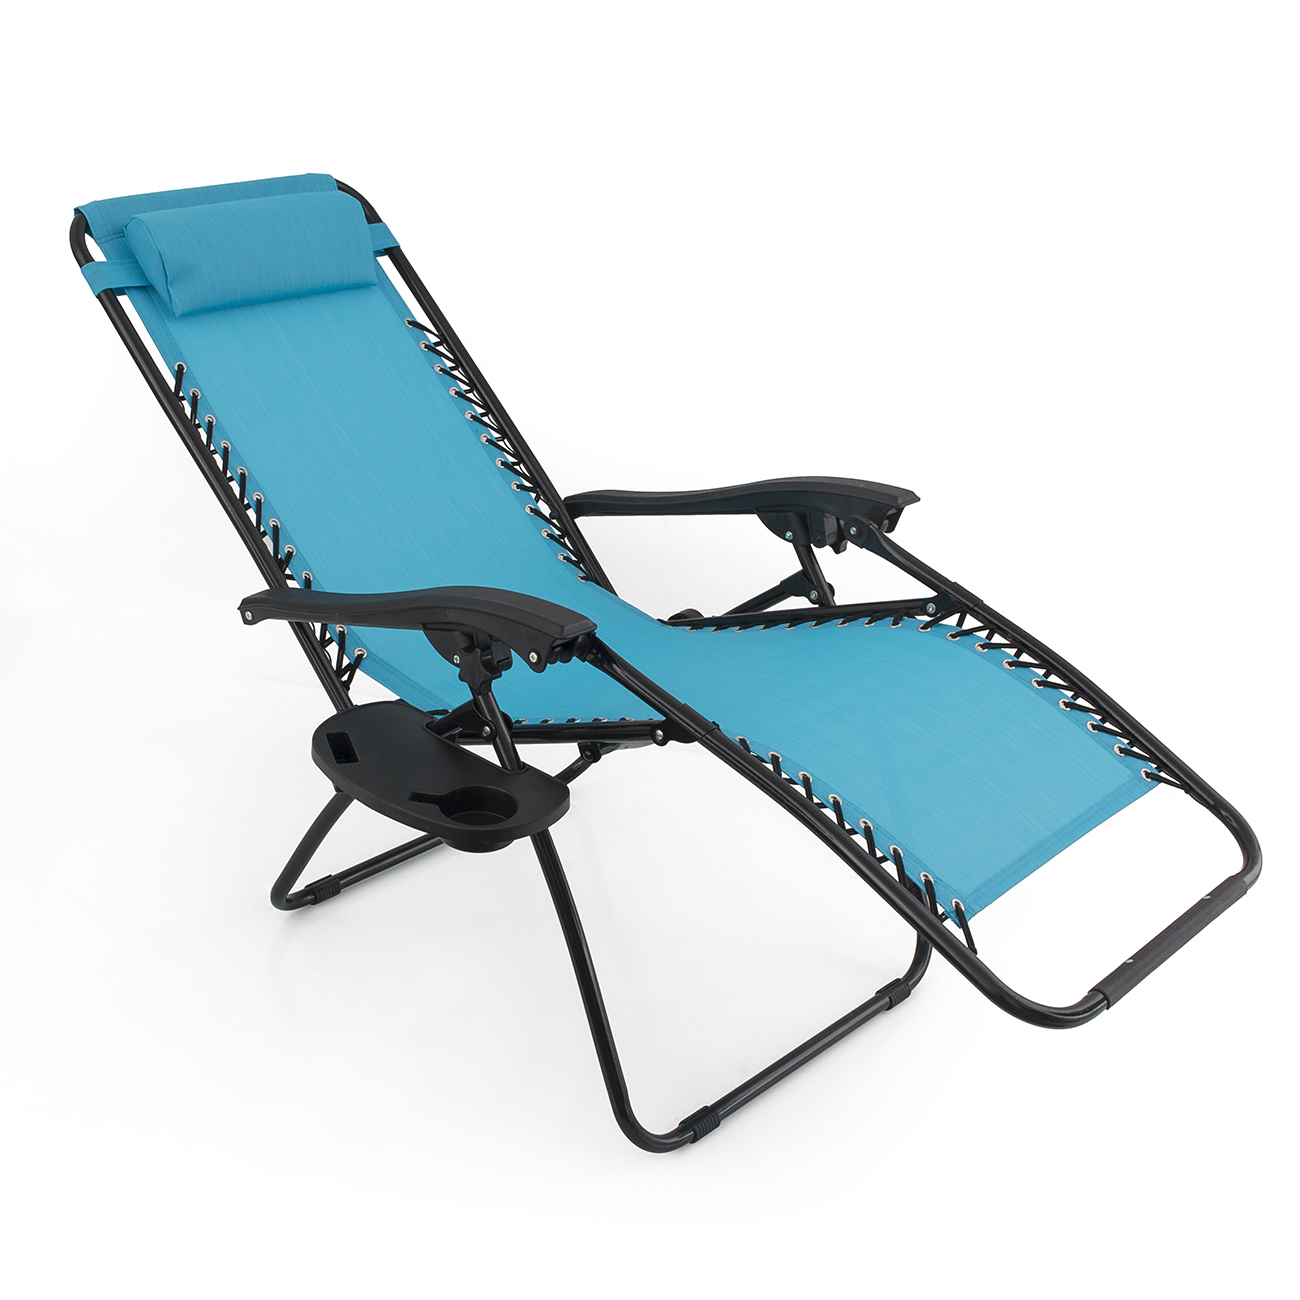 2 Folding Zero Gravity Reclining Lounge Chairs Utility